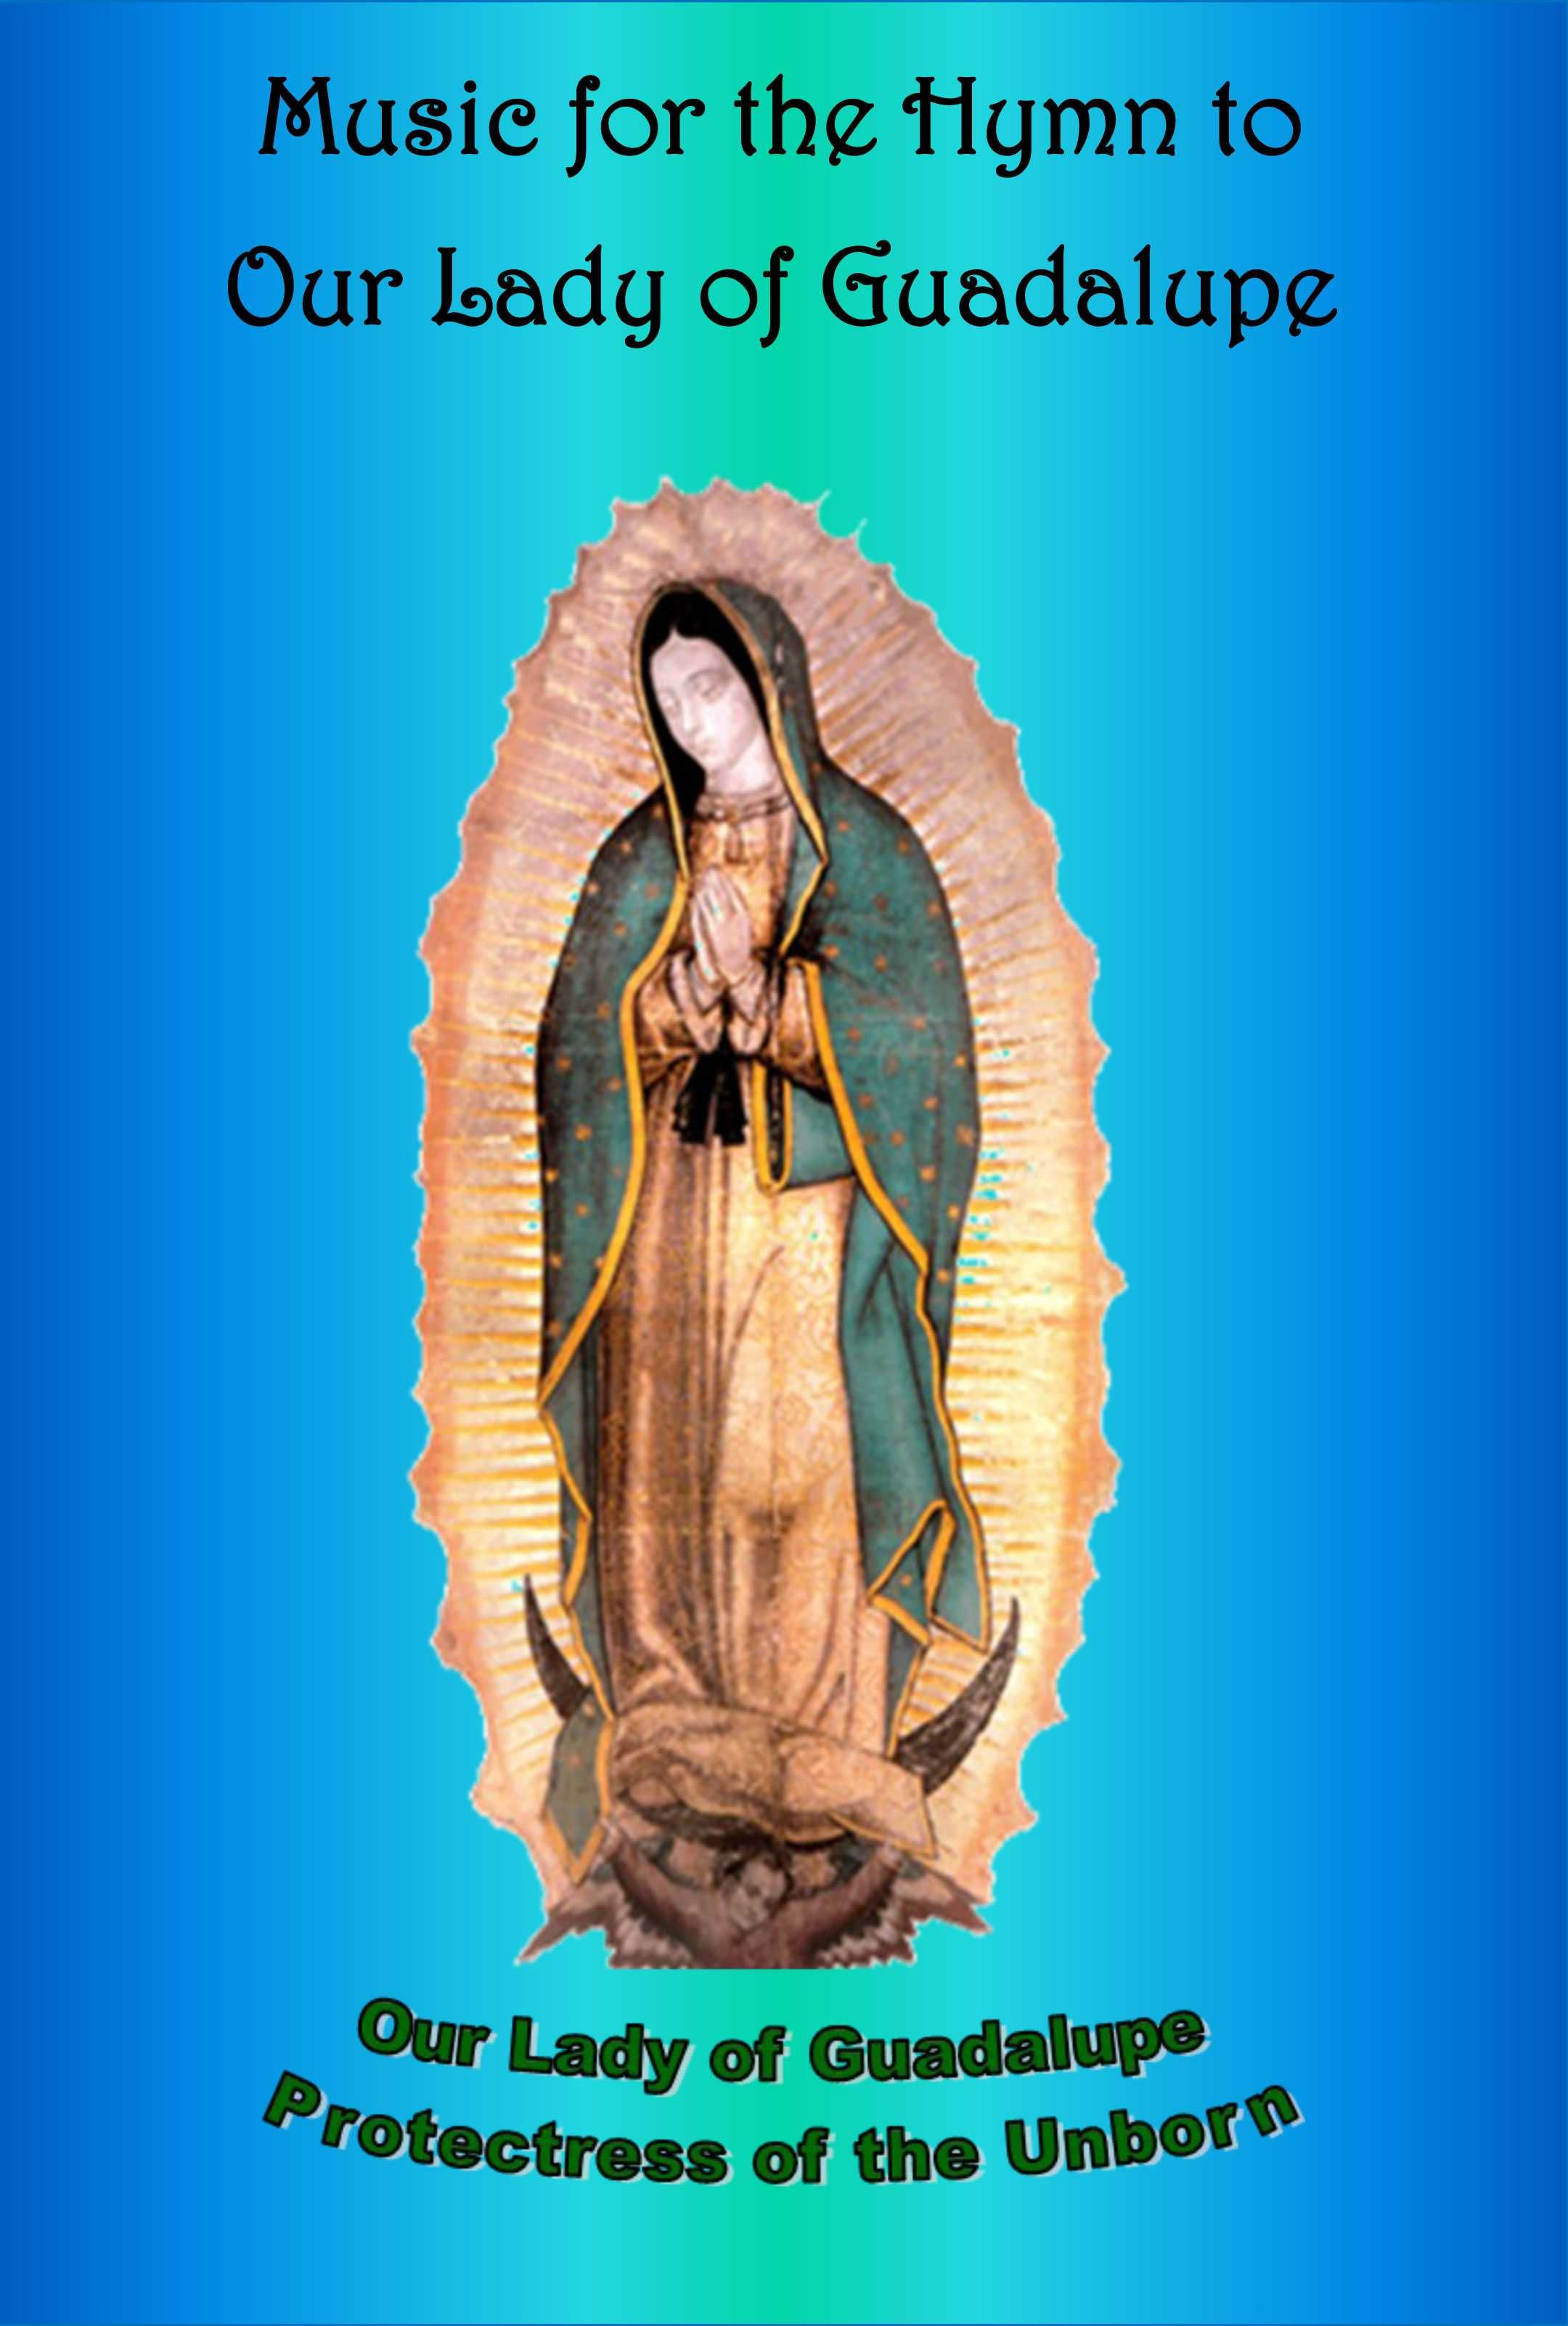 Our Father Prayer Worksheet And Hymn To Our Lady Of